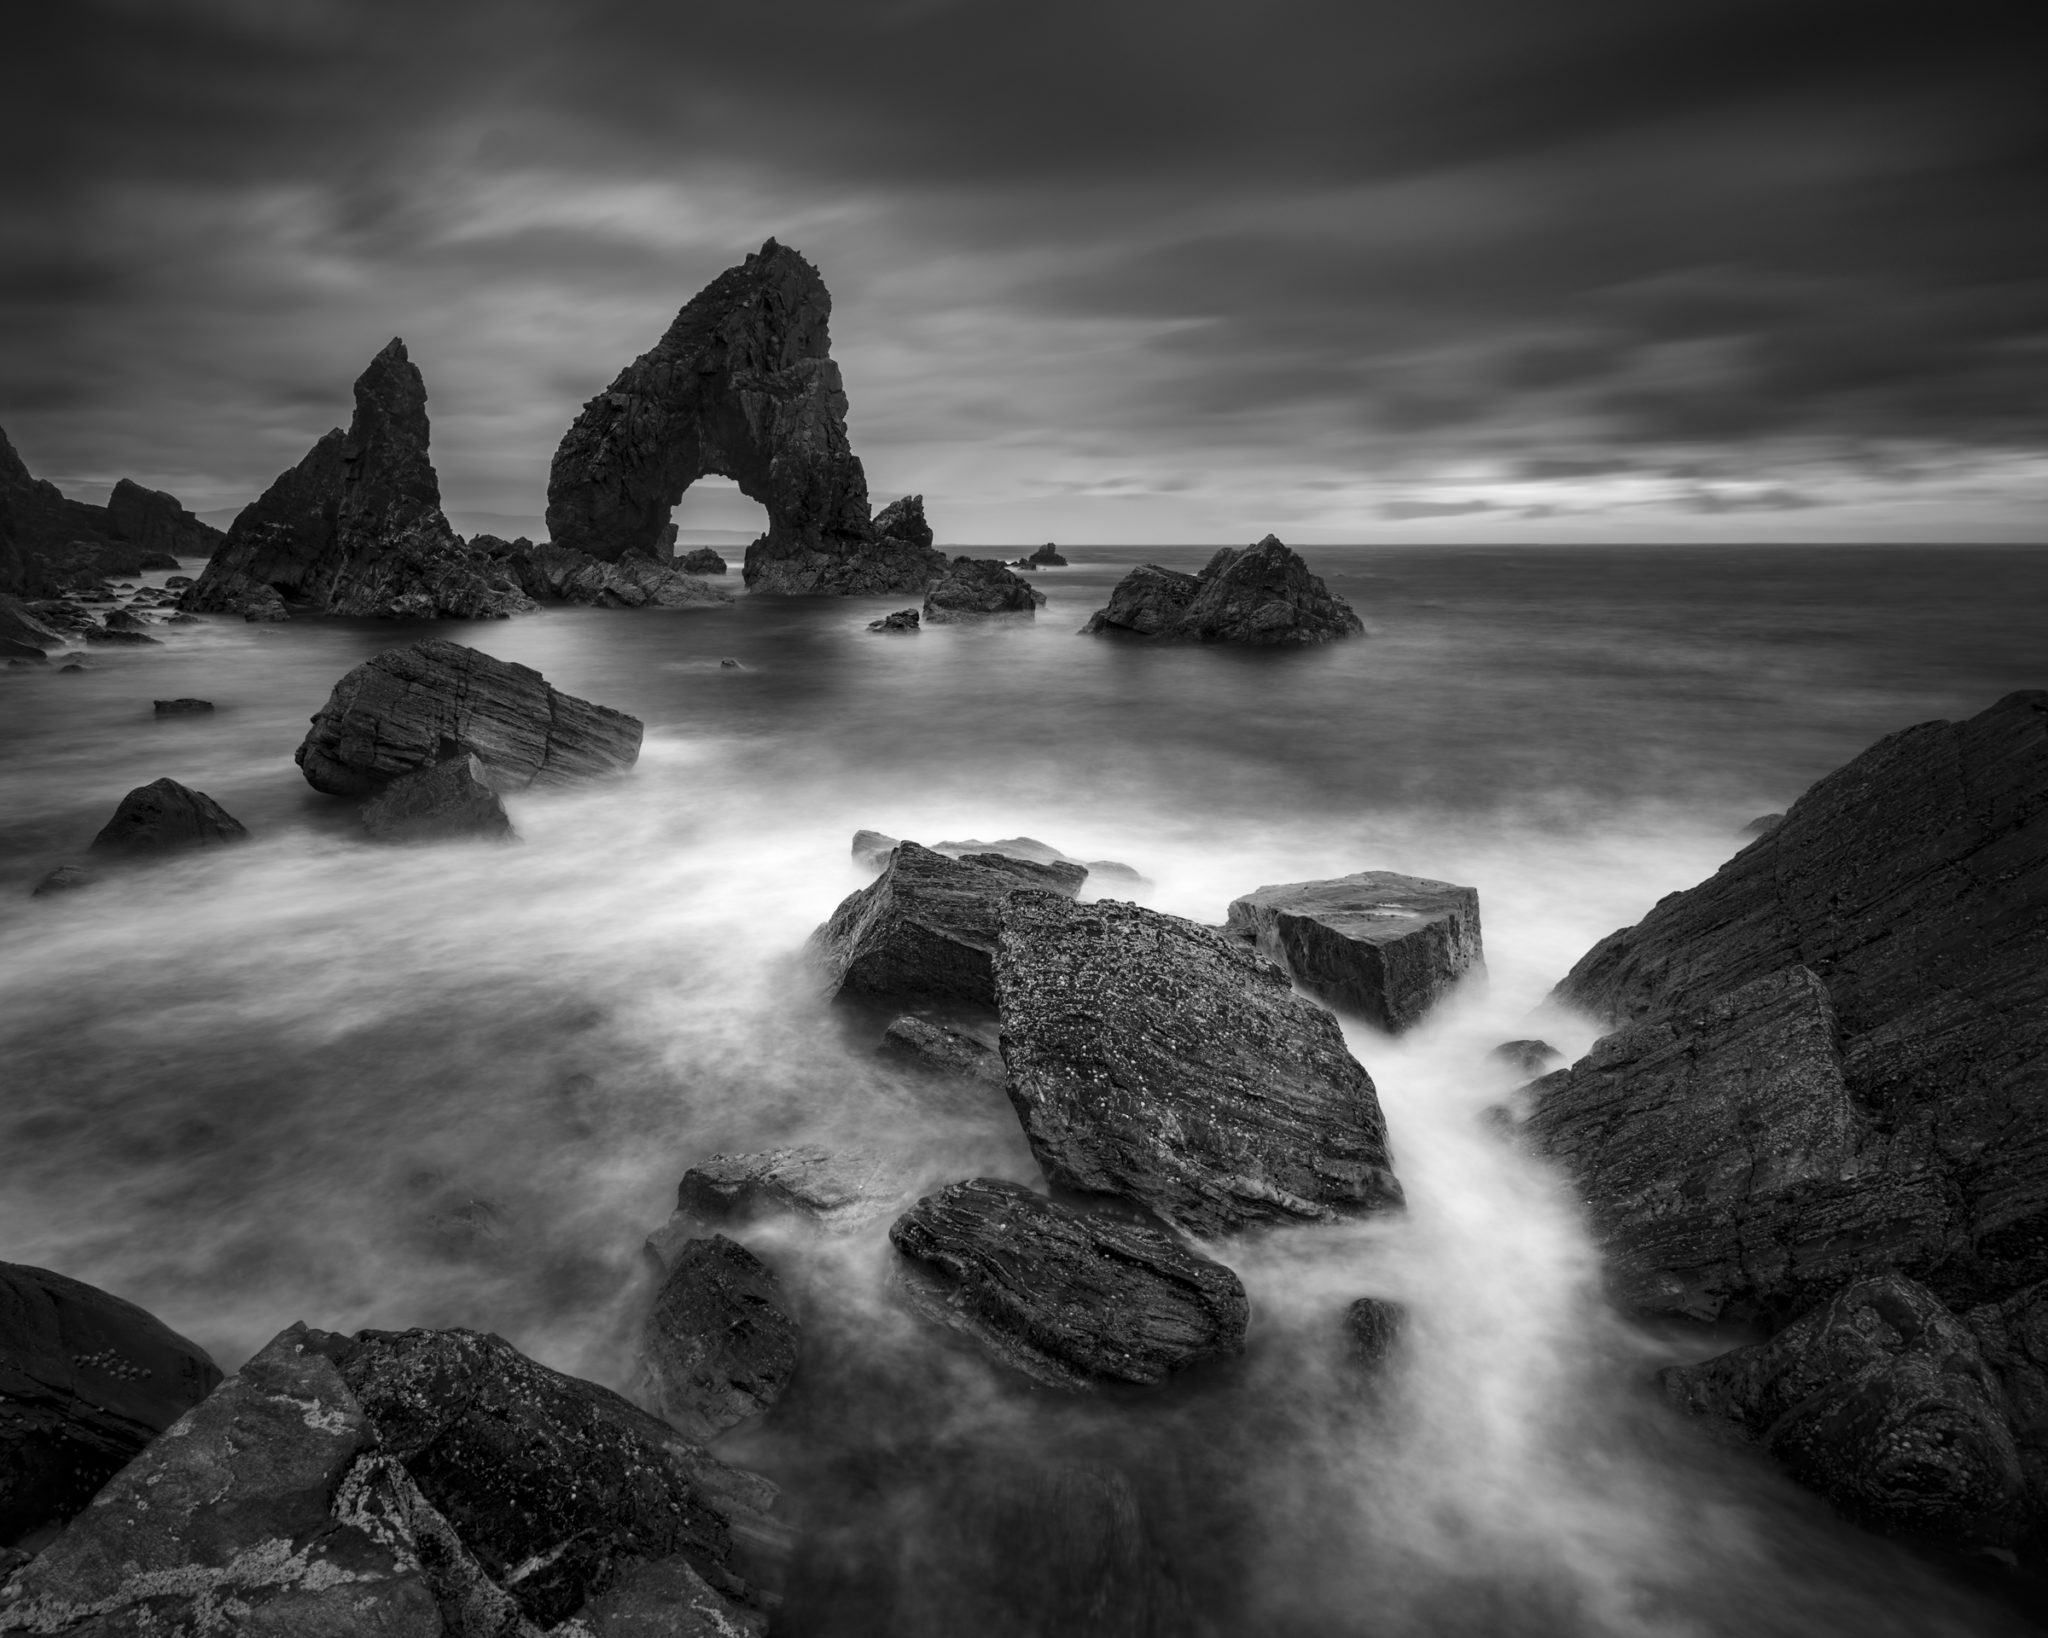 3 simple seascape photography tips to keep you safe